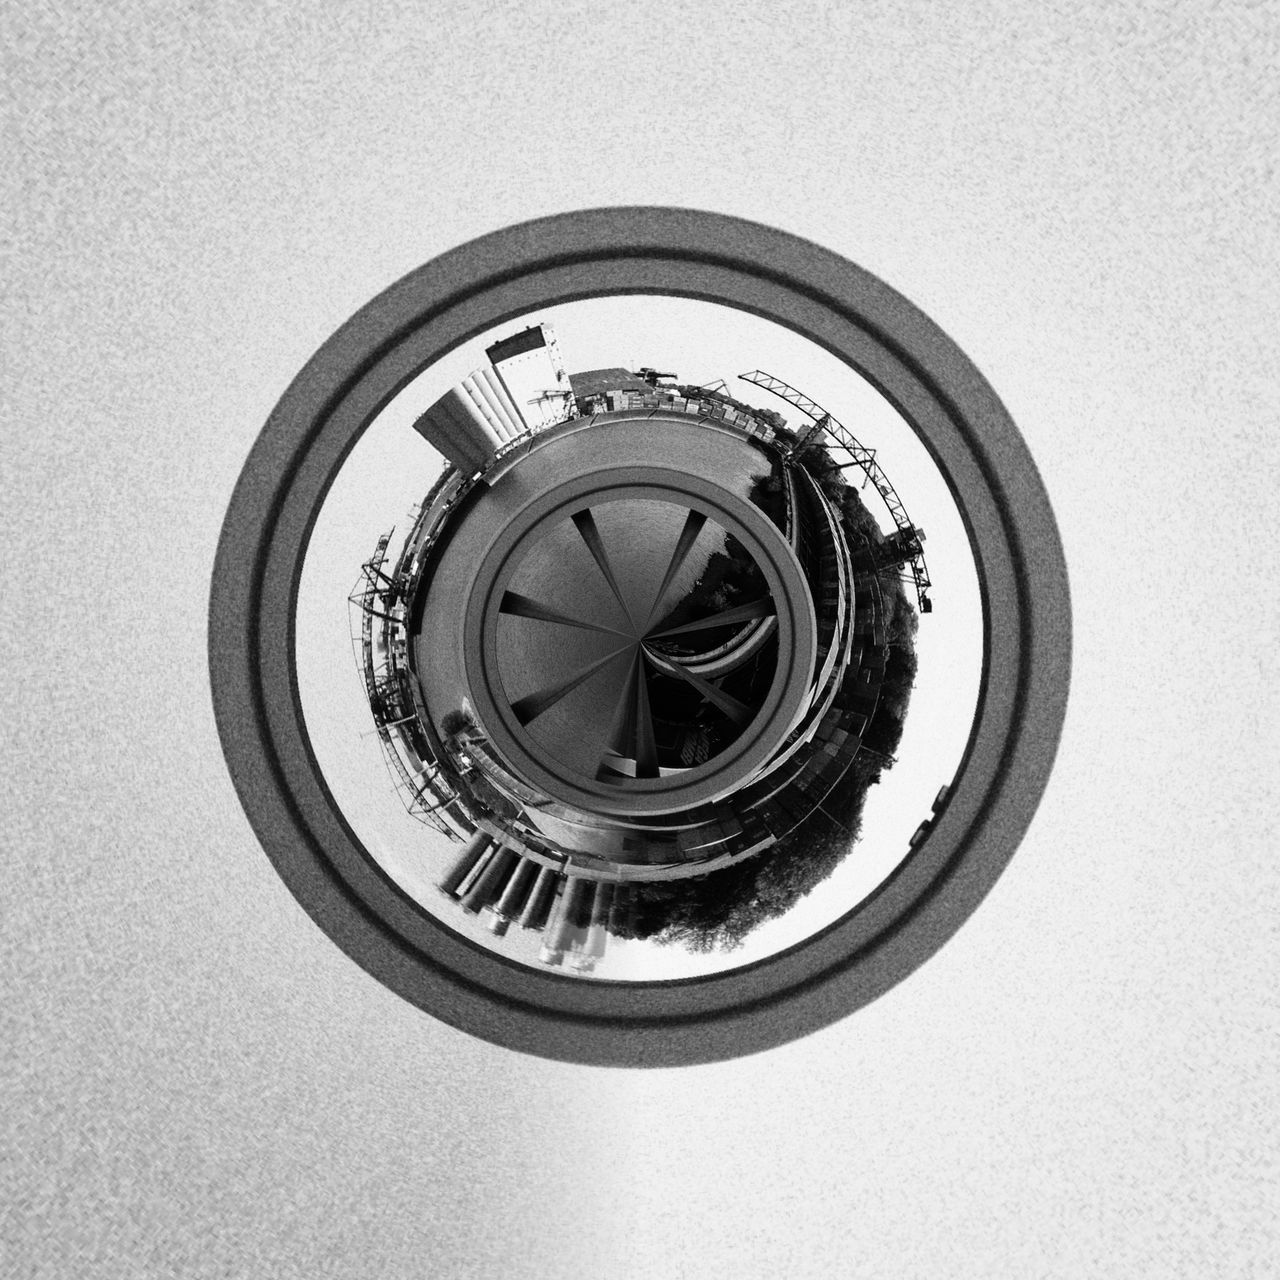 Hamburg Hafen B/w Circle Geometric Shape Germany Hamburg IPhone 4S IPhoneography Monochrome No People Quadratisch S/w Snapseed Square Tiny Planet Tinyplanets